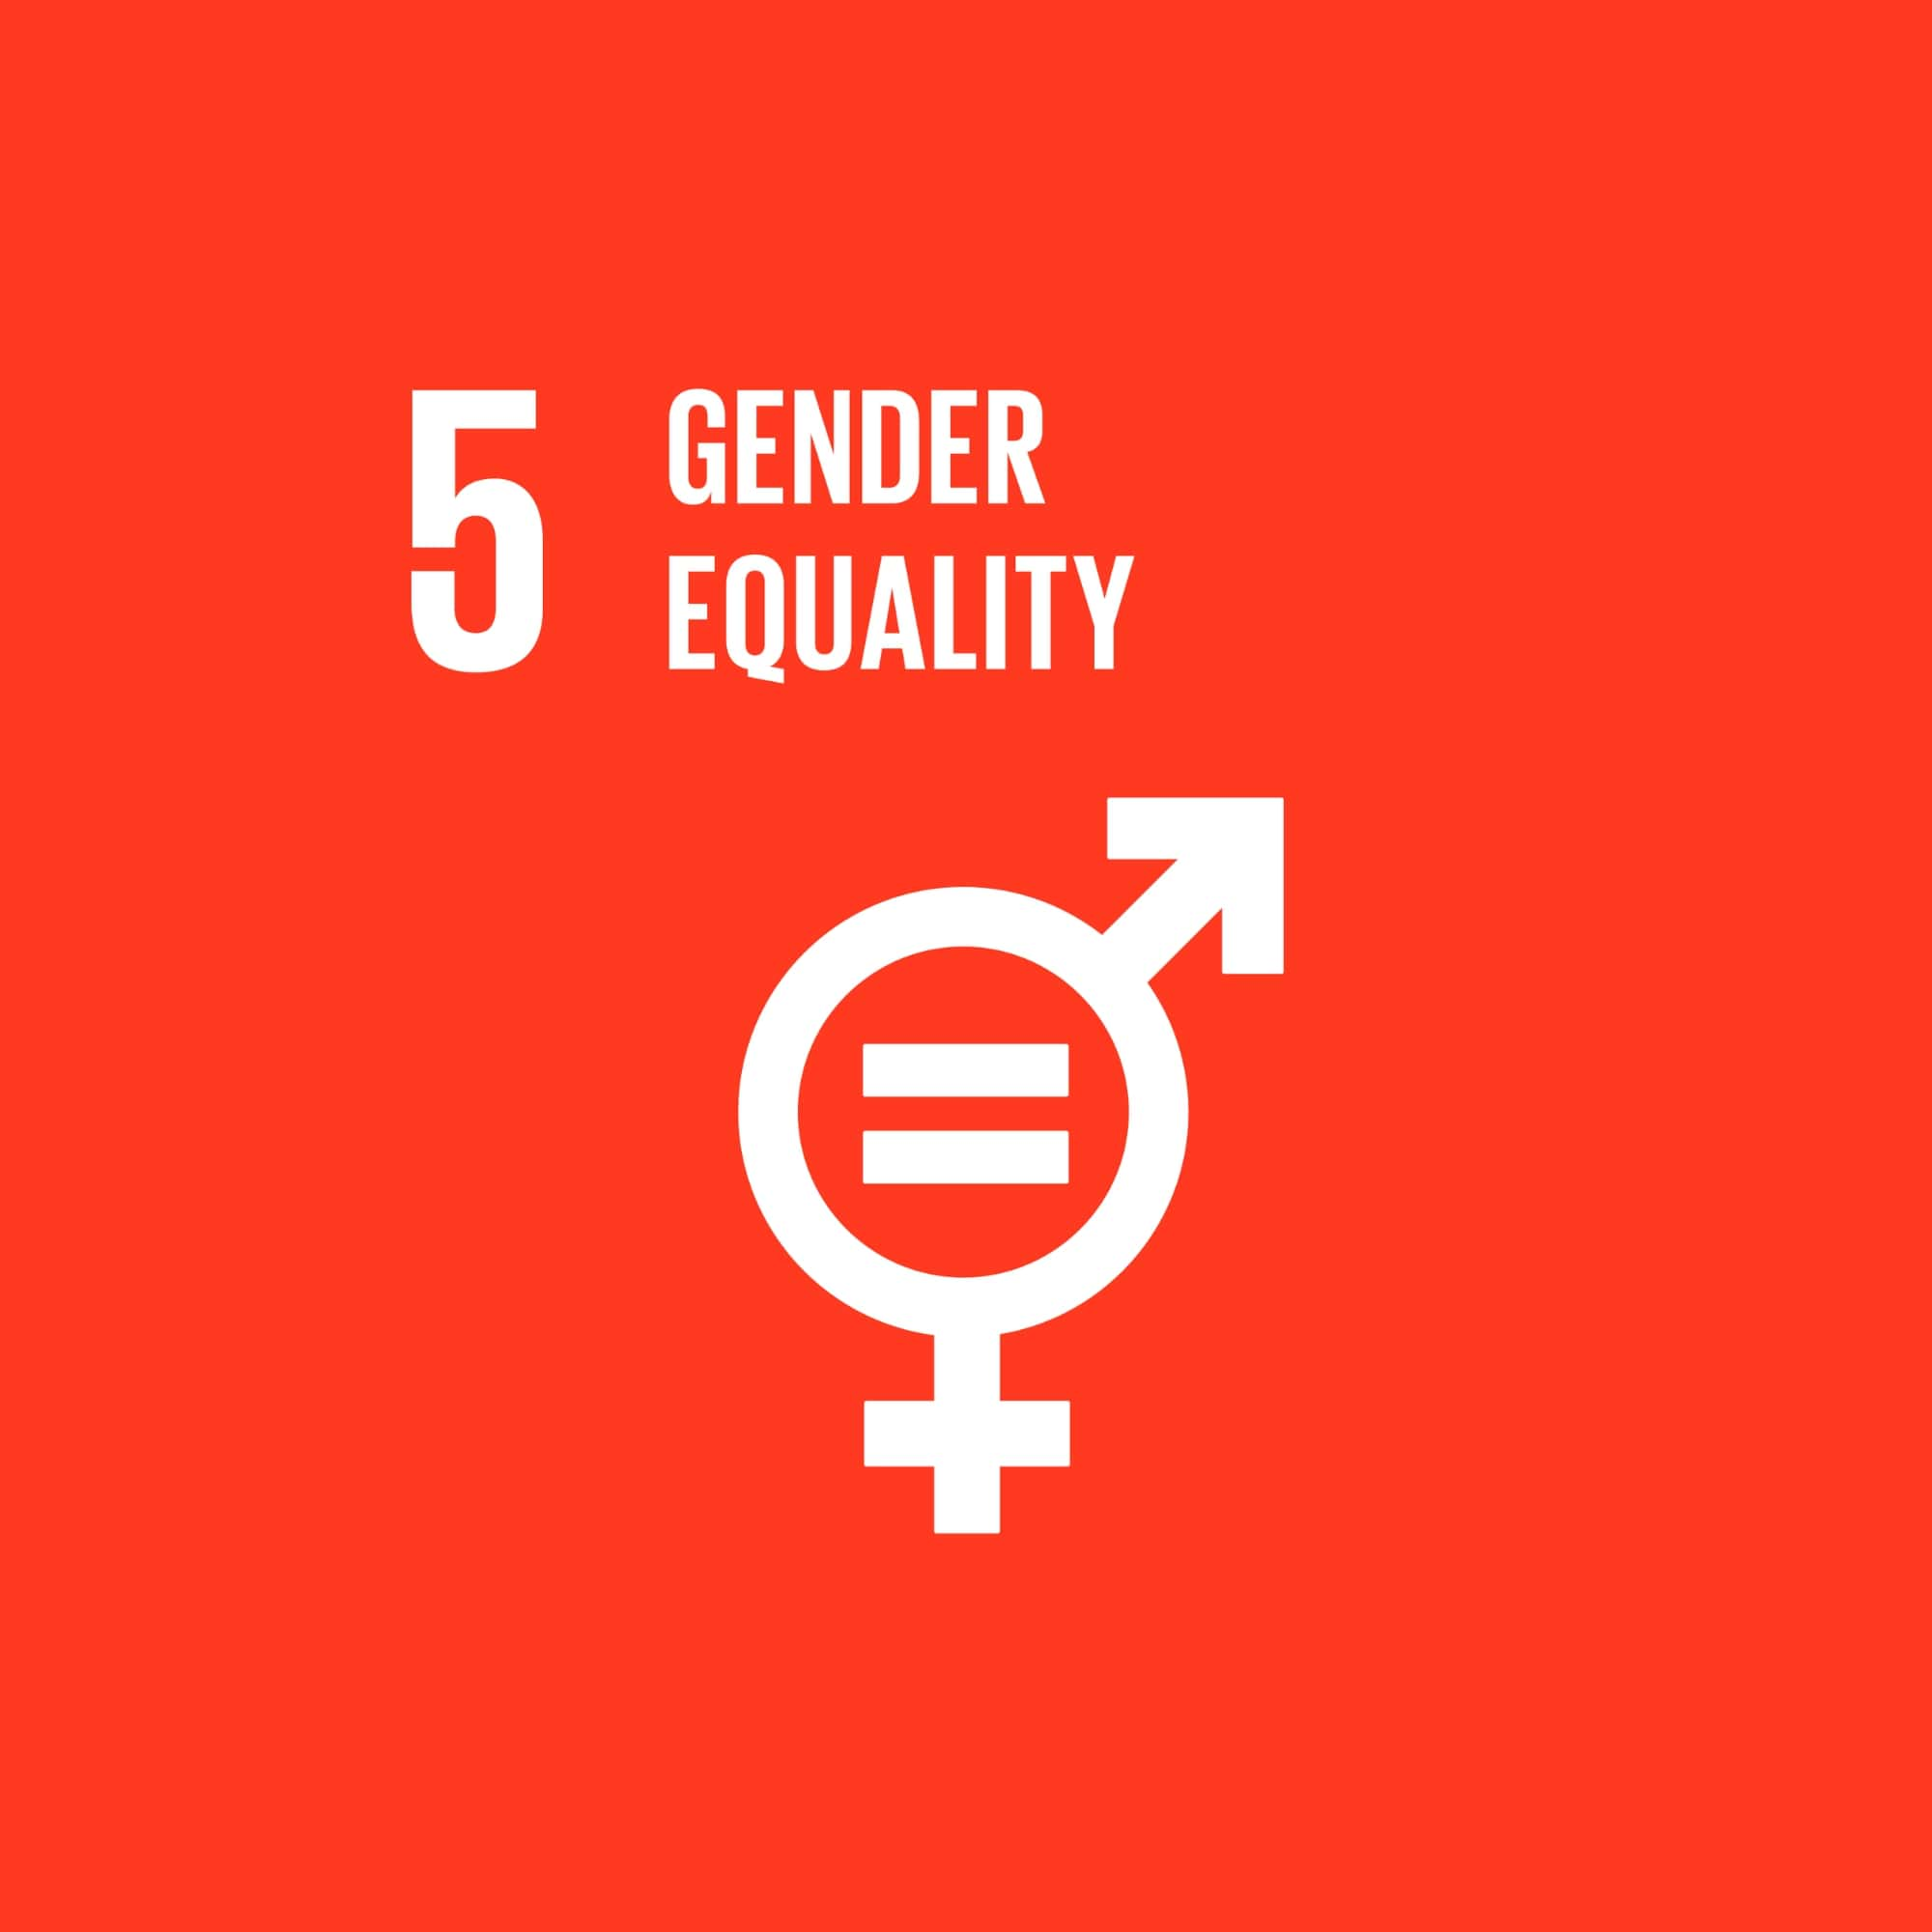 GLOBAL SUSTAINABILITY : GENDER EQUALITY